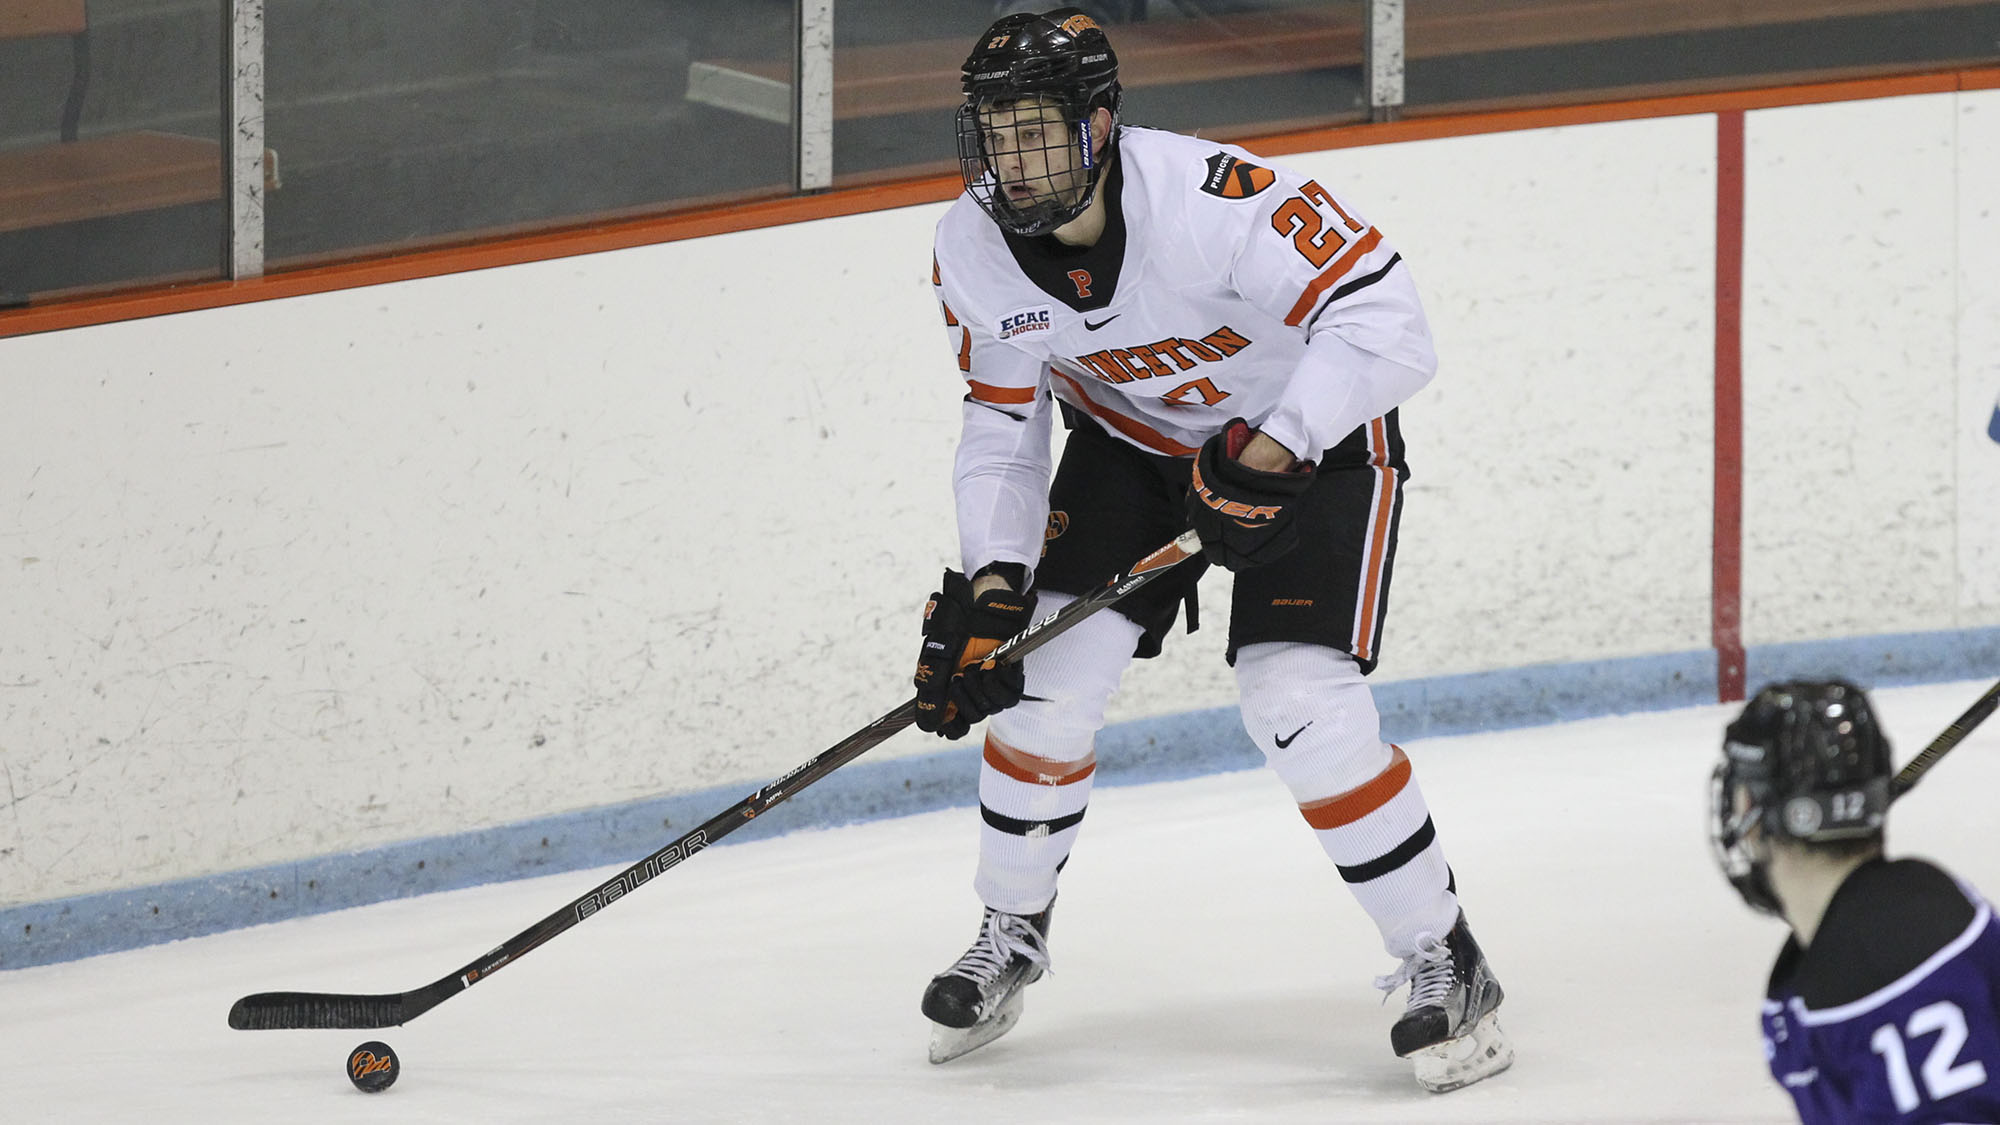 Joe Grabowski - Men's Ice Hockey - Princeton University